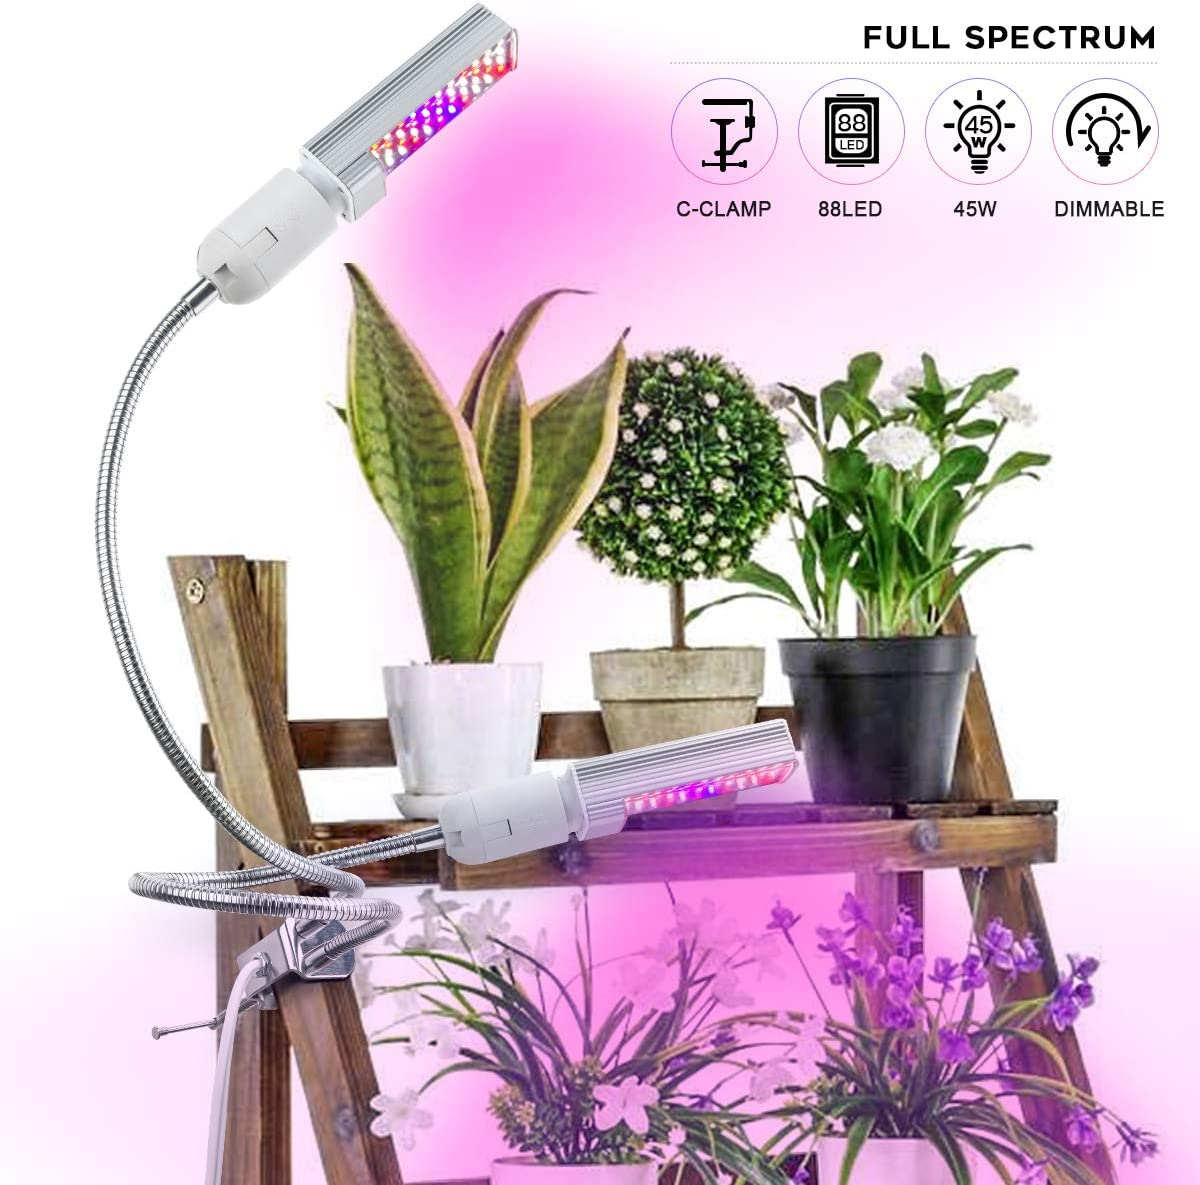 Grow Light for Indoor Plants, Kolem 45W Full Spectrum LED Grow Light with Replaceable Indoor Plant Light Bulbs, Double Switch 4 Dimmable Levels Grow Lights for Seedling, Flower, Veg